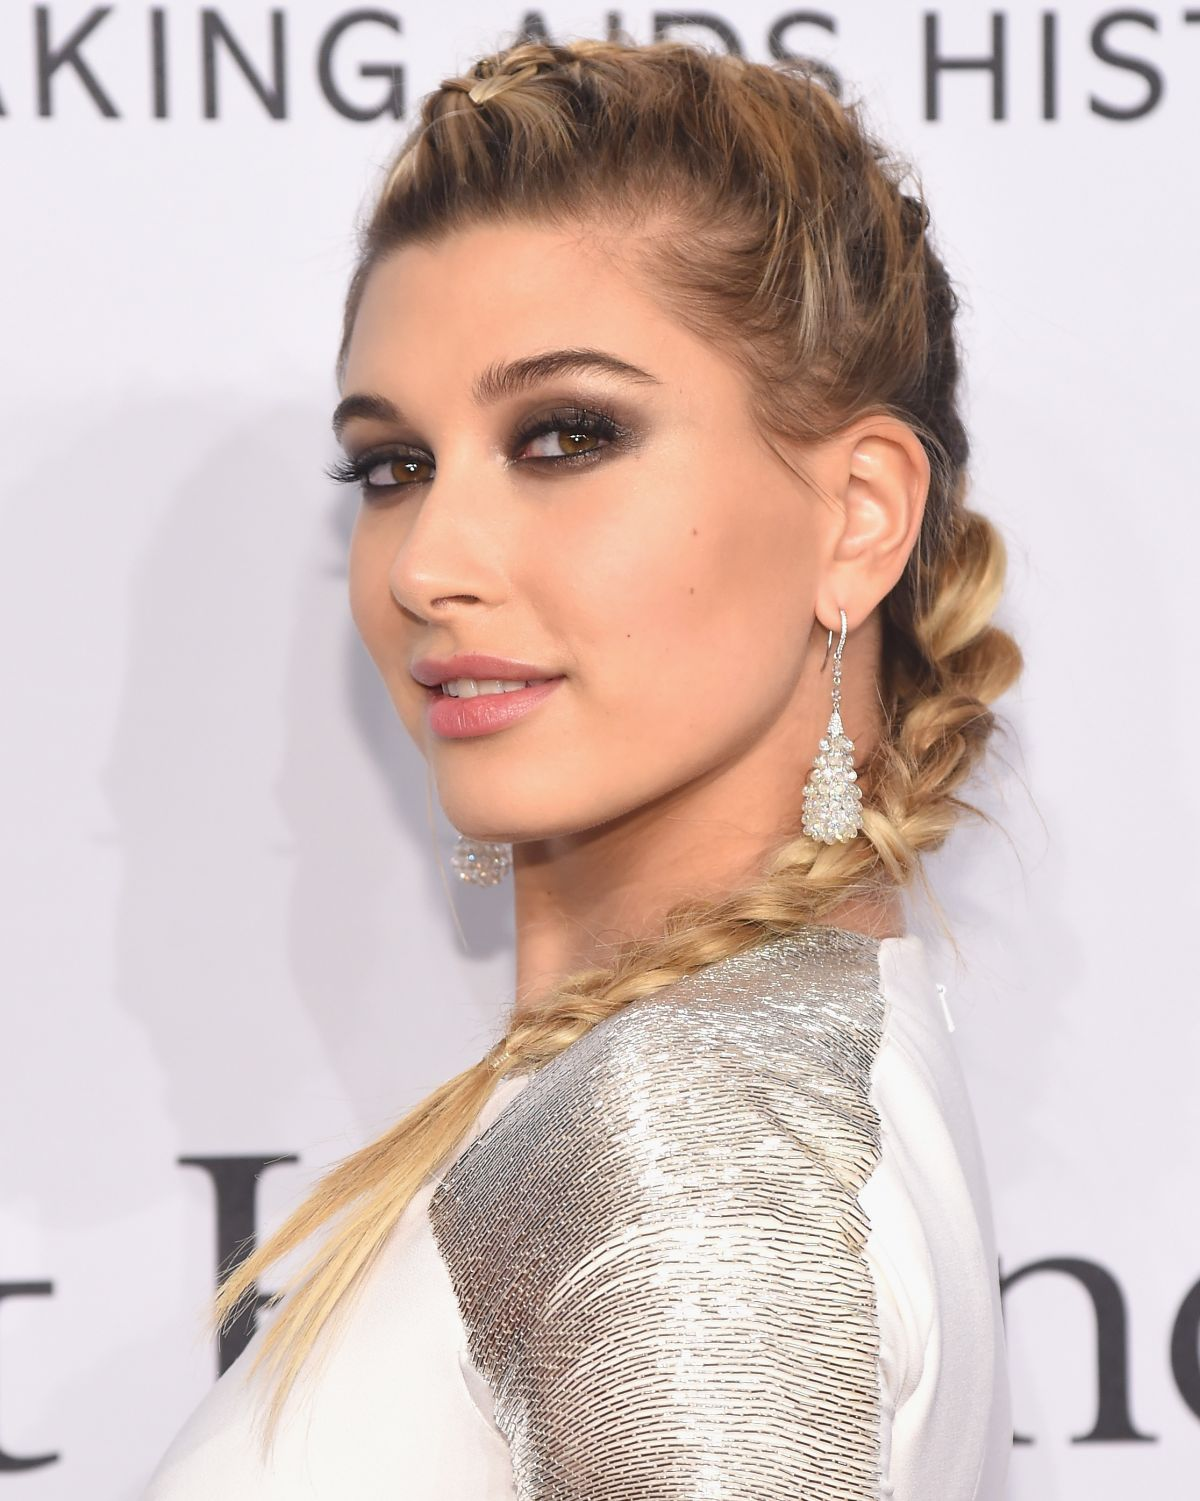 hailey baldwin - photo #48